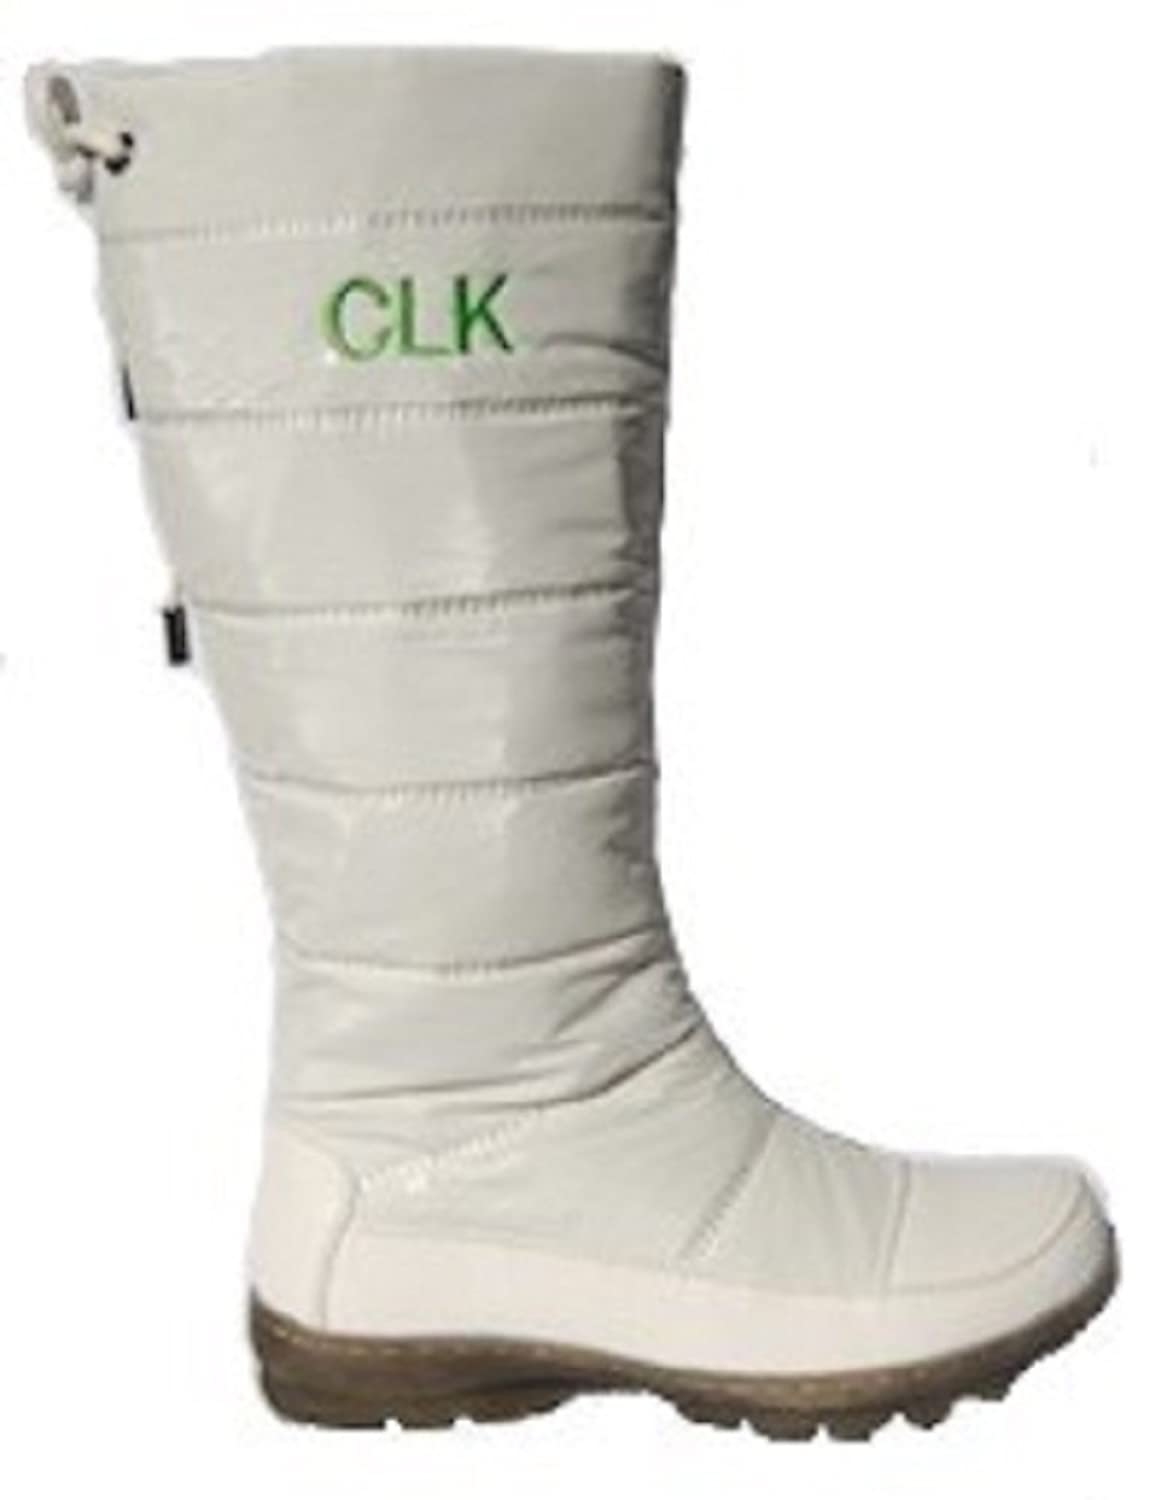 White Rain Boots and Snow Boots